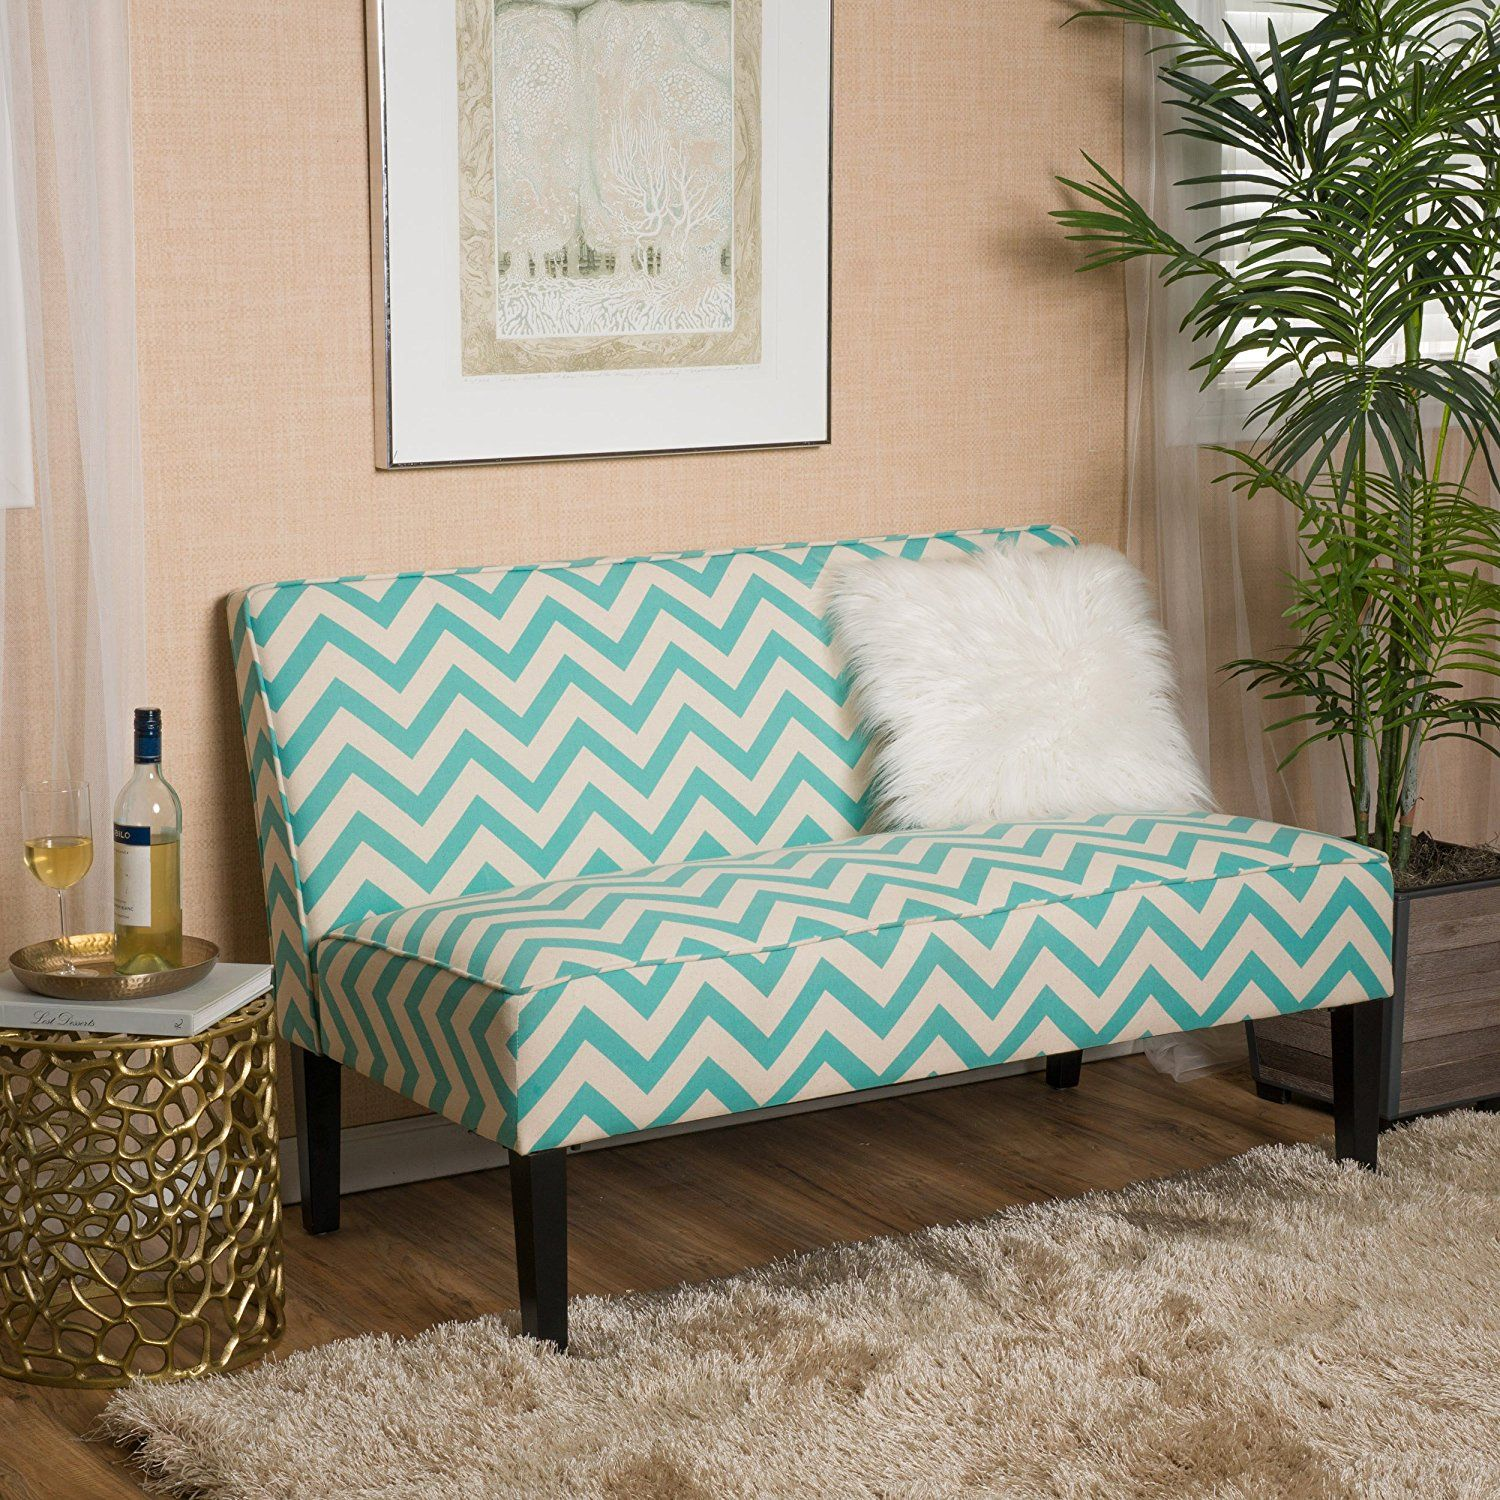 The Sunset Boulevard Charcoal Chaise from Rooms To Go I also love